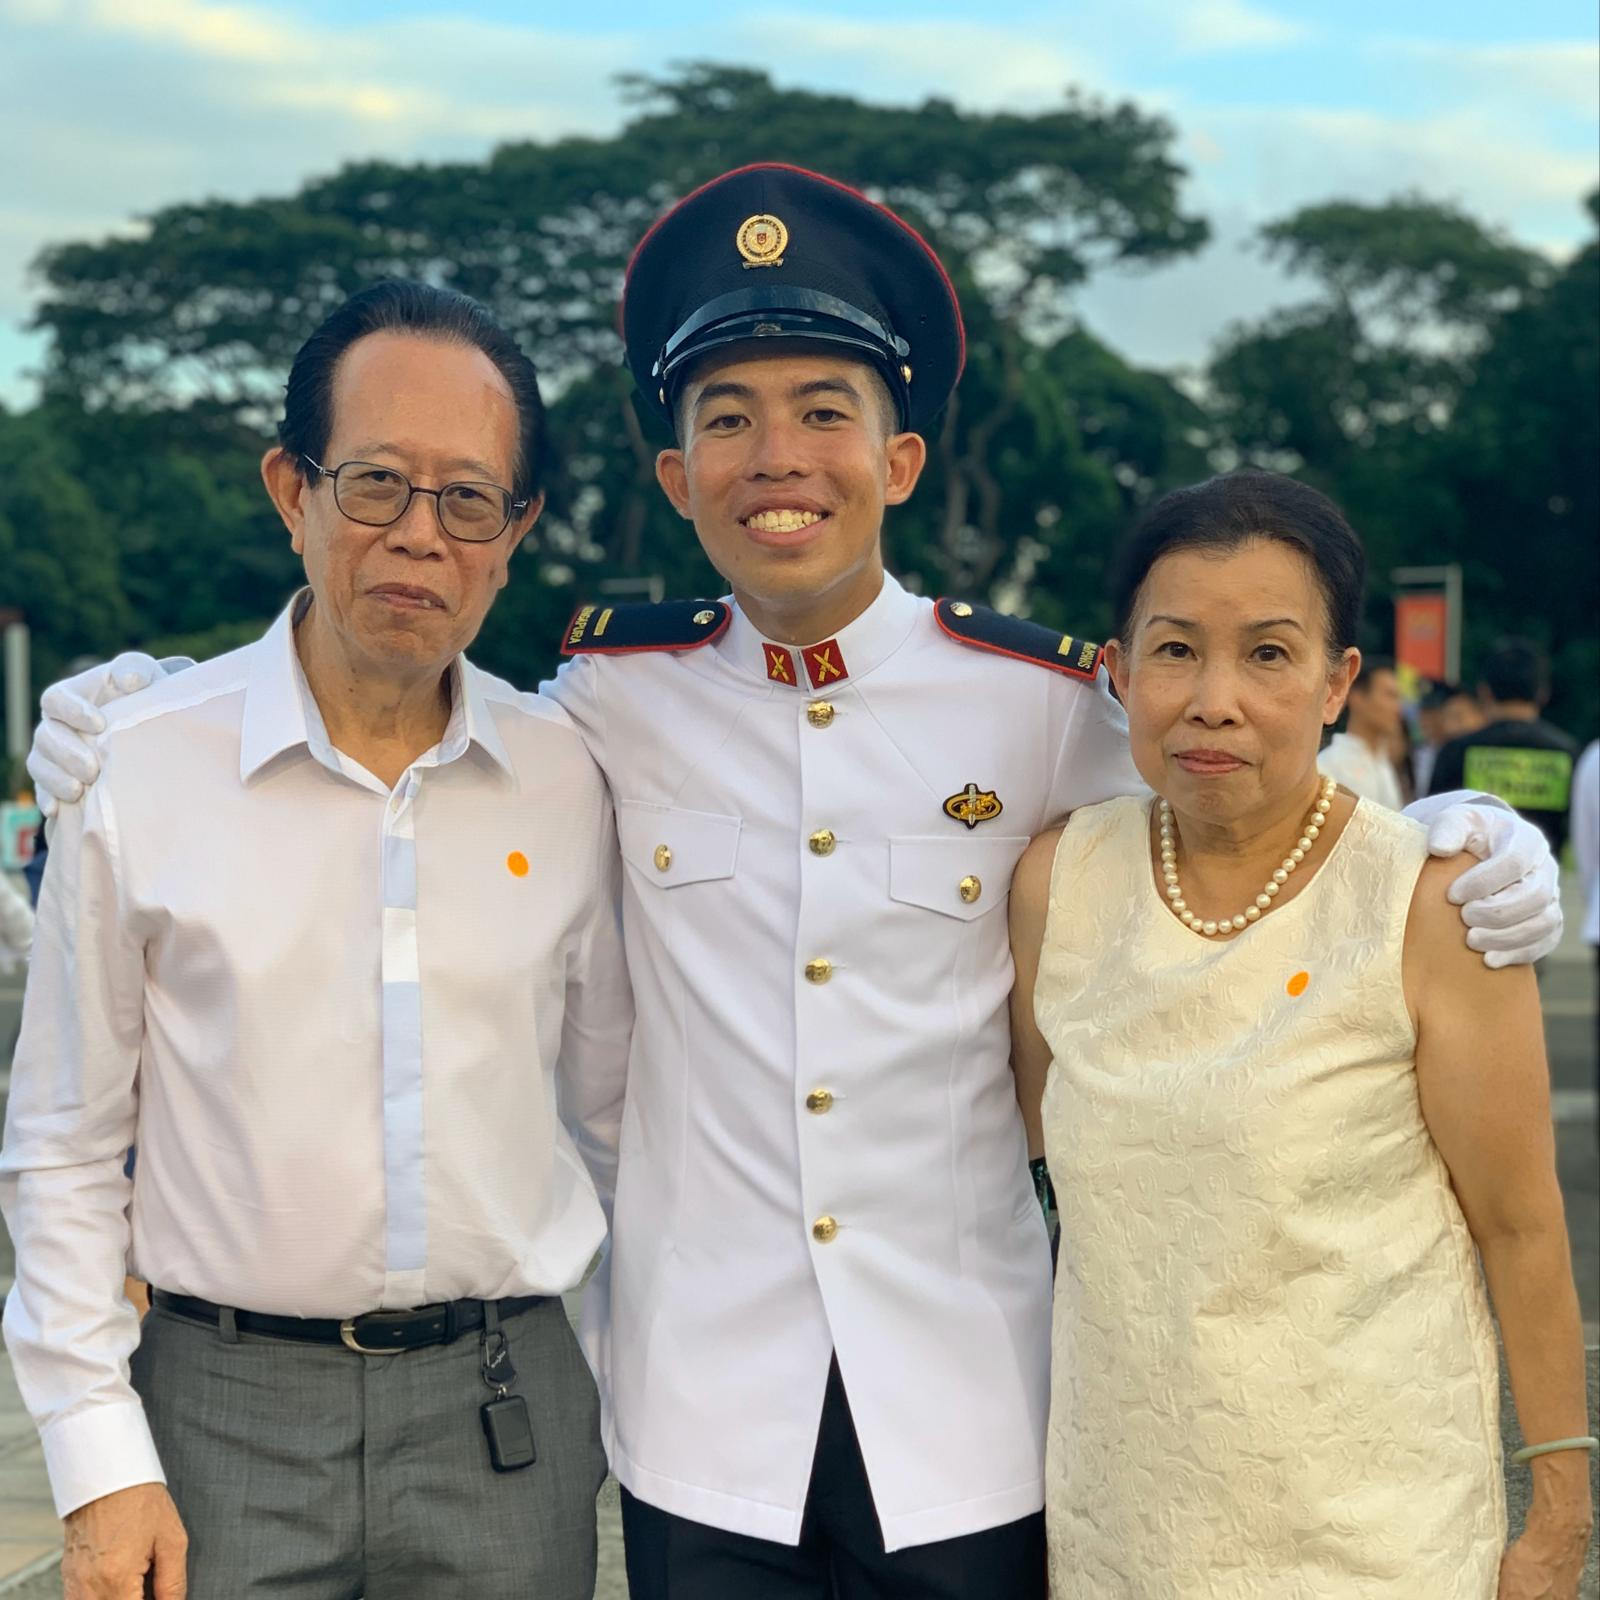 2LT Sean Pang (centre) with his parents during the Officer Cadet Commissioning Parade.